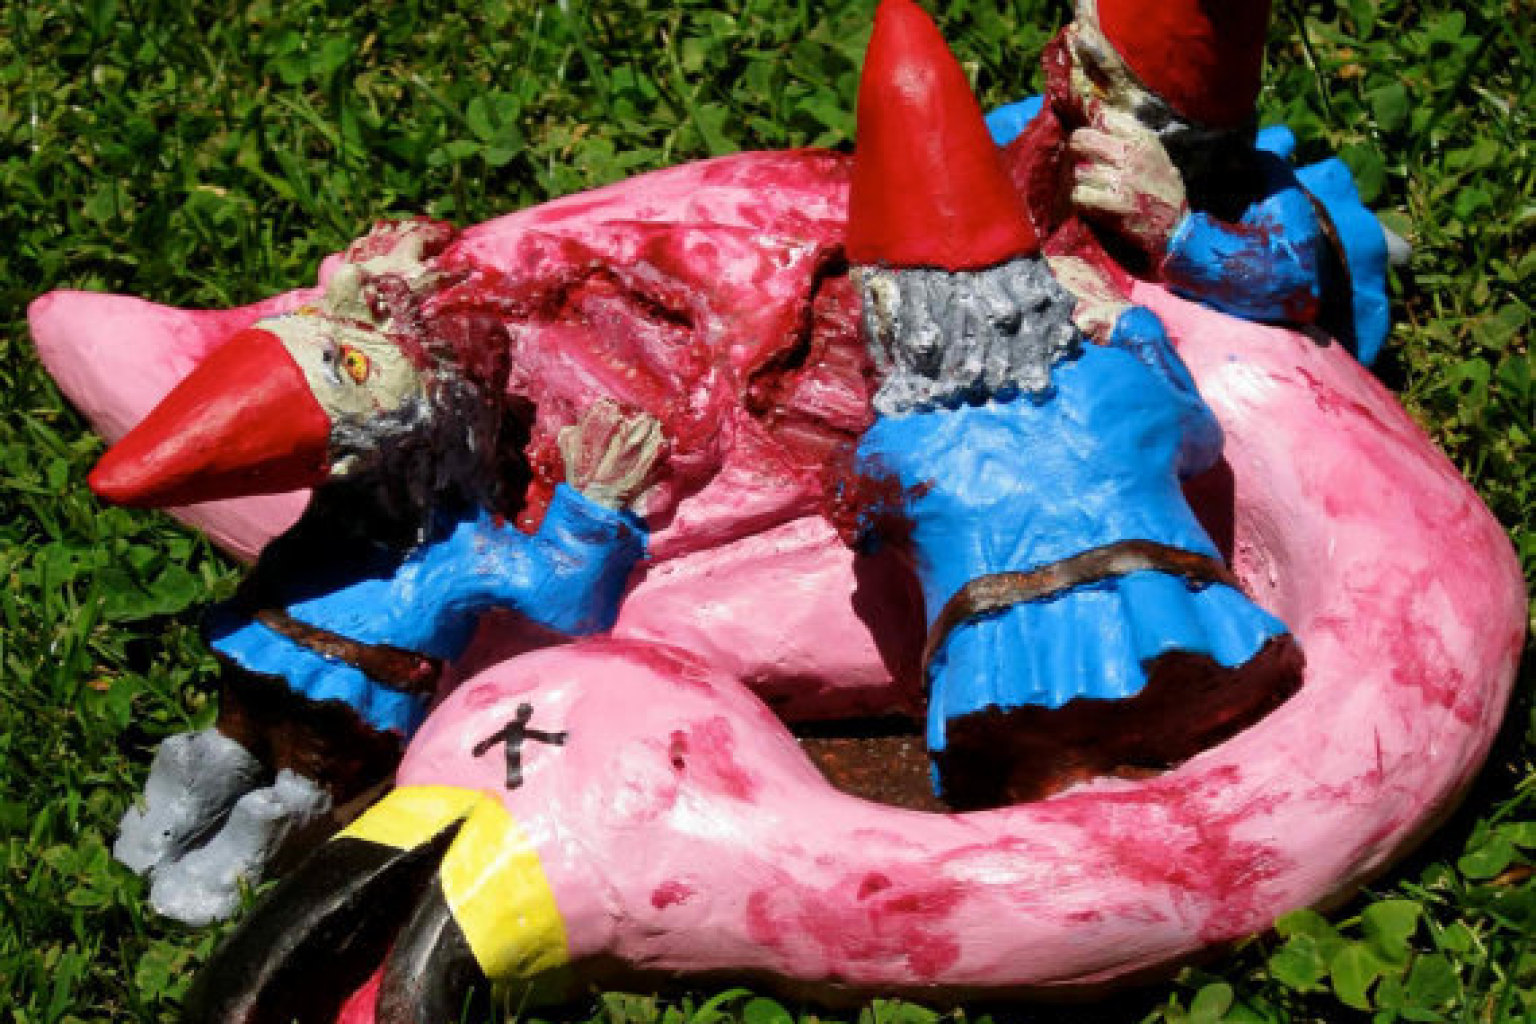 Zombie Lawn Gnomes Gnaw On Flamingo And 13 Other Crazy Lawn